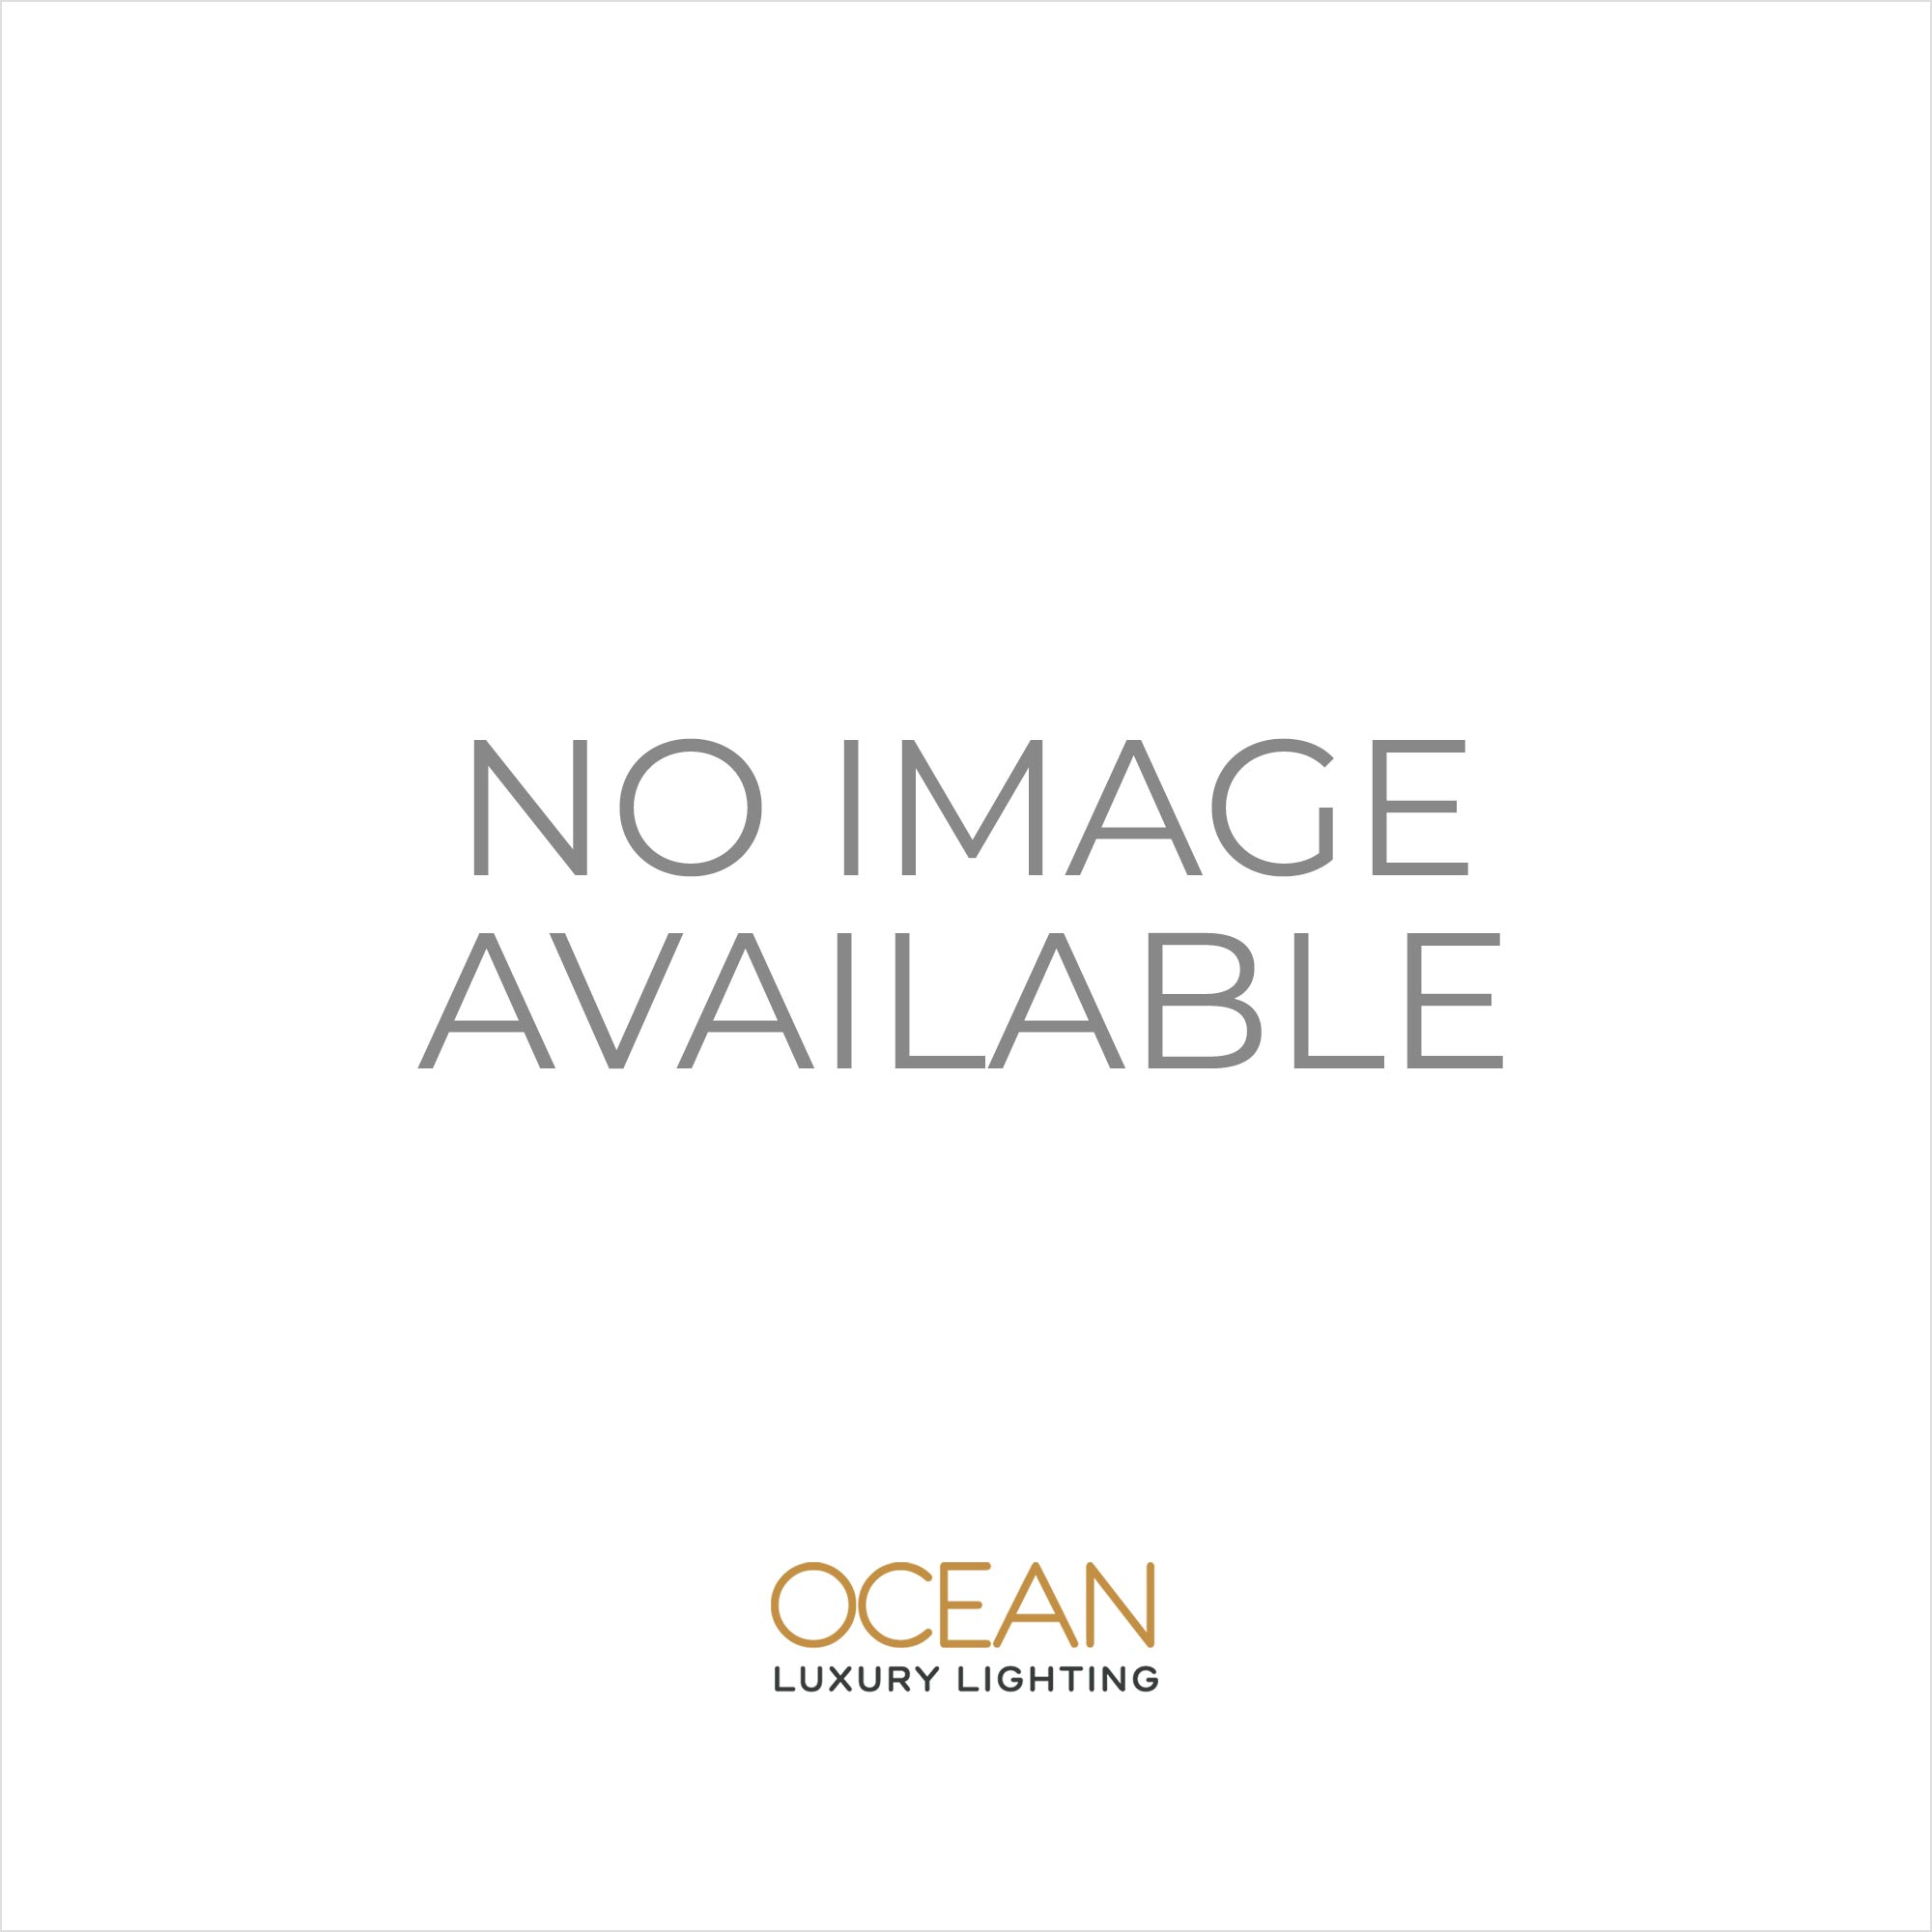 Pacific Lifestyle 40-034 Severus LED Wall Surface Slimline Brick Light IP65 Dark Grey